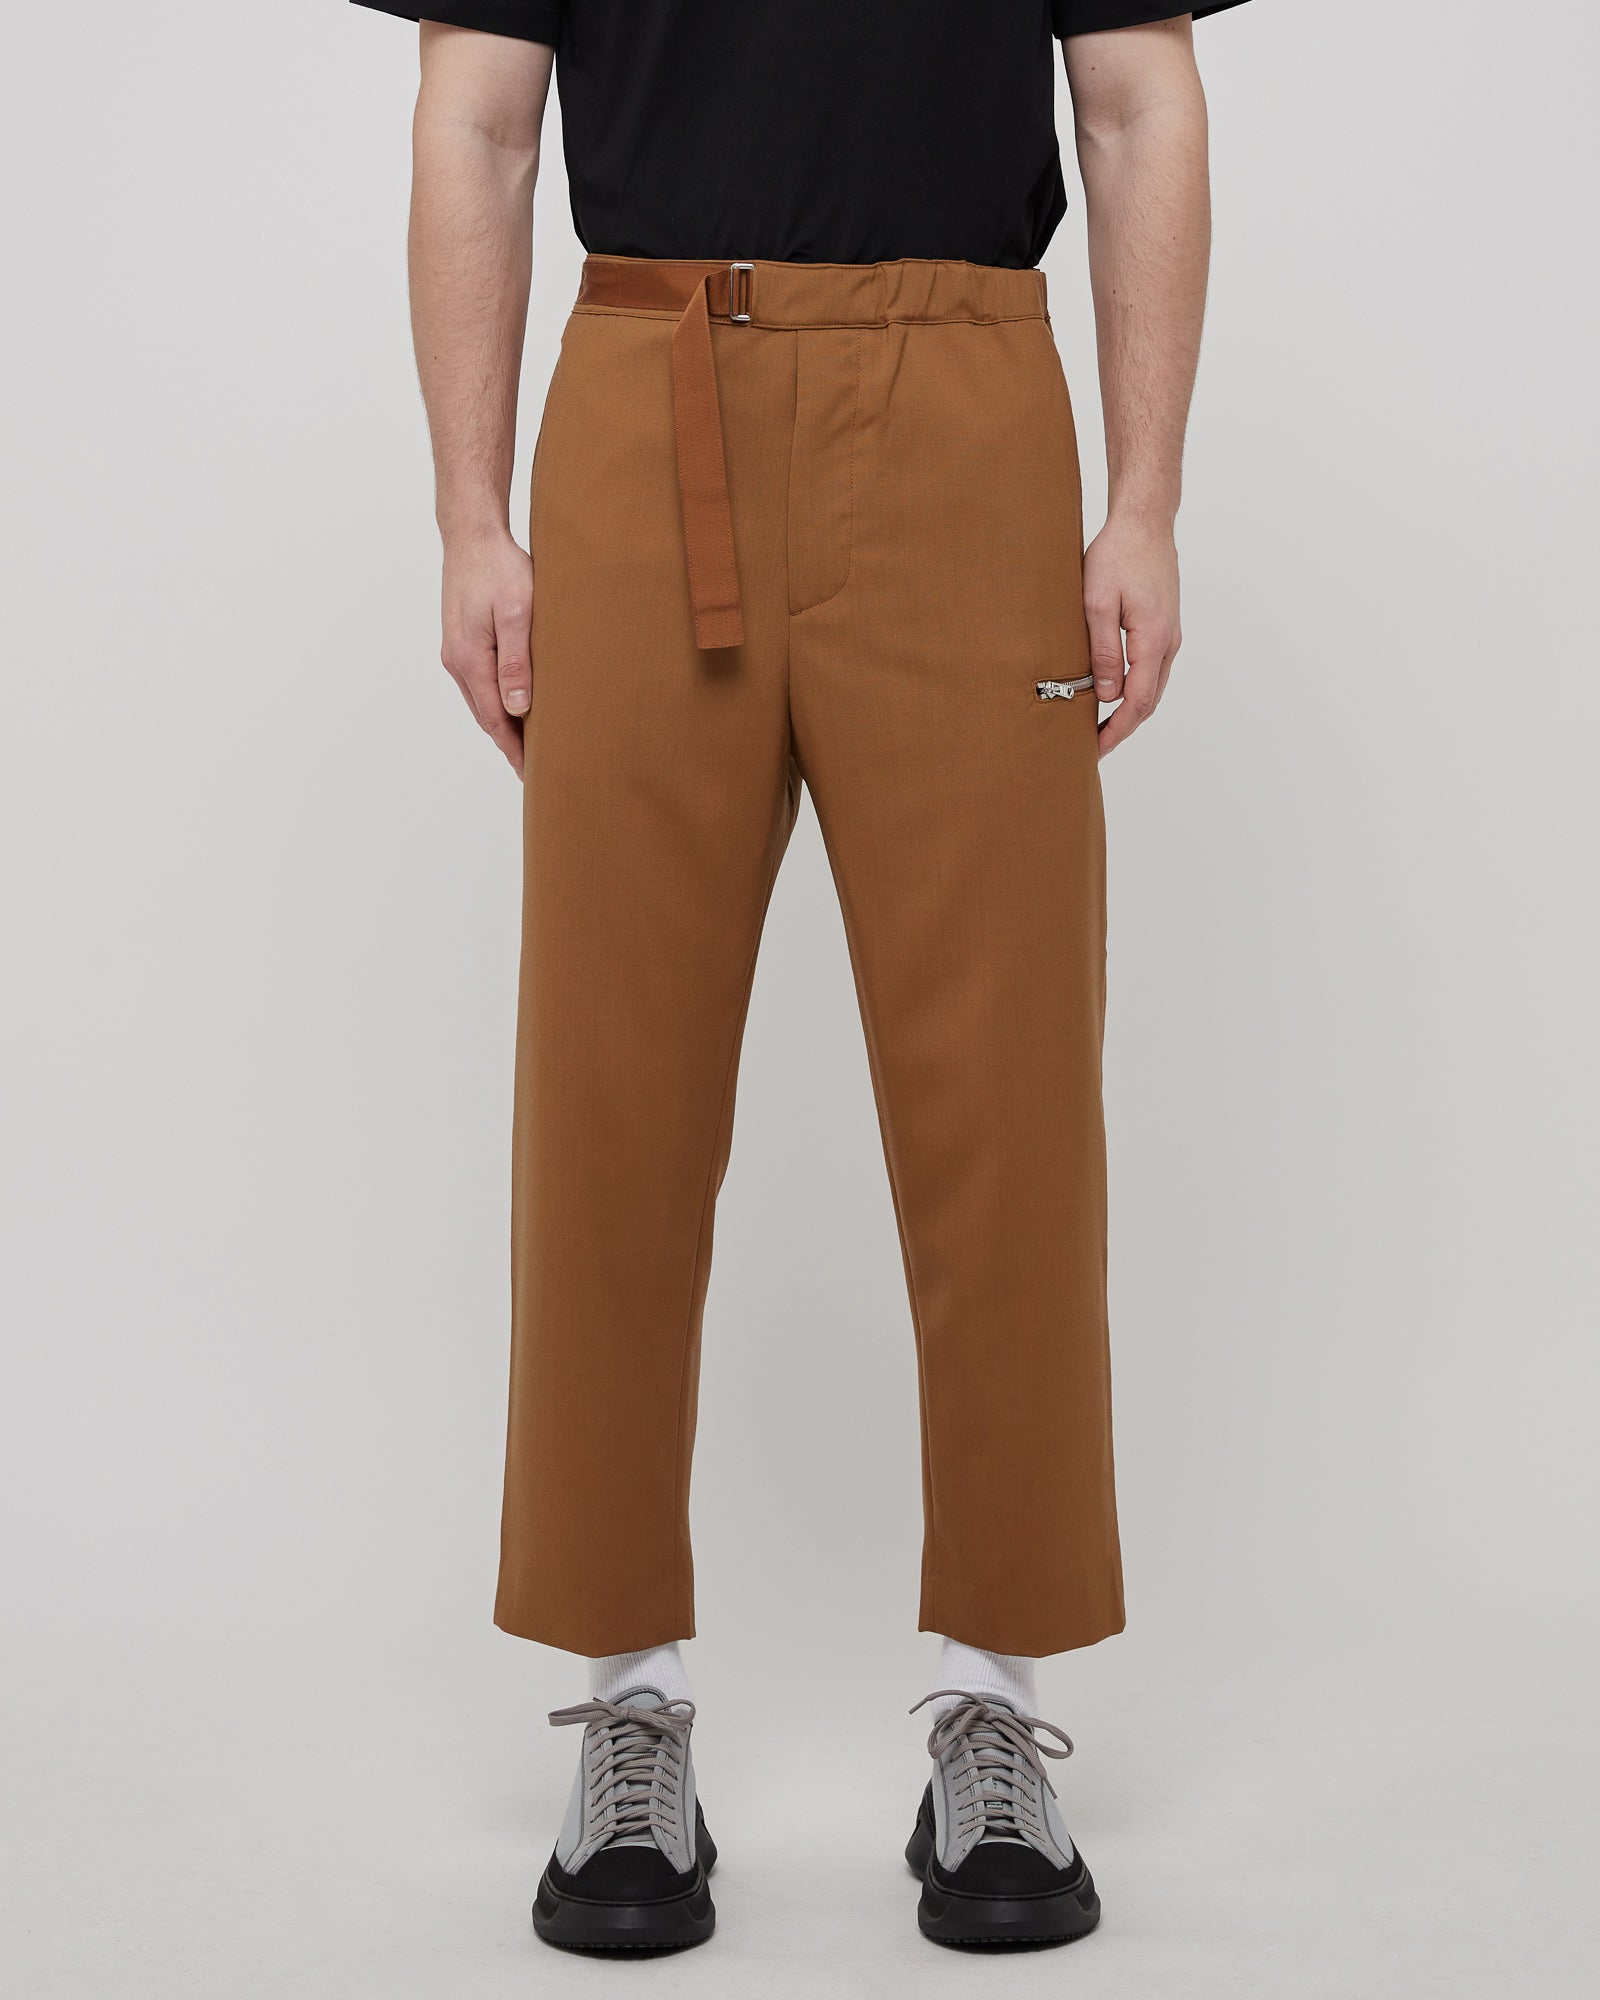 Regs Pant in Tan